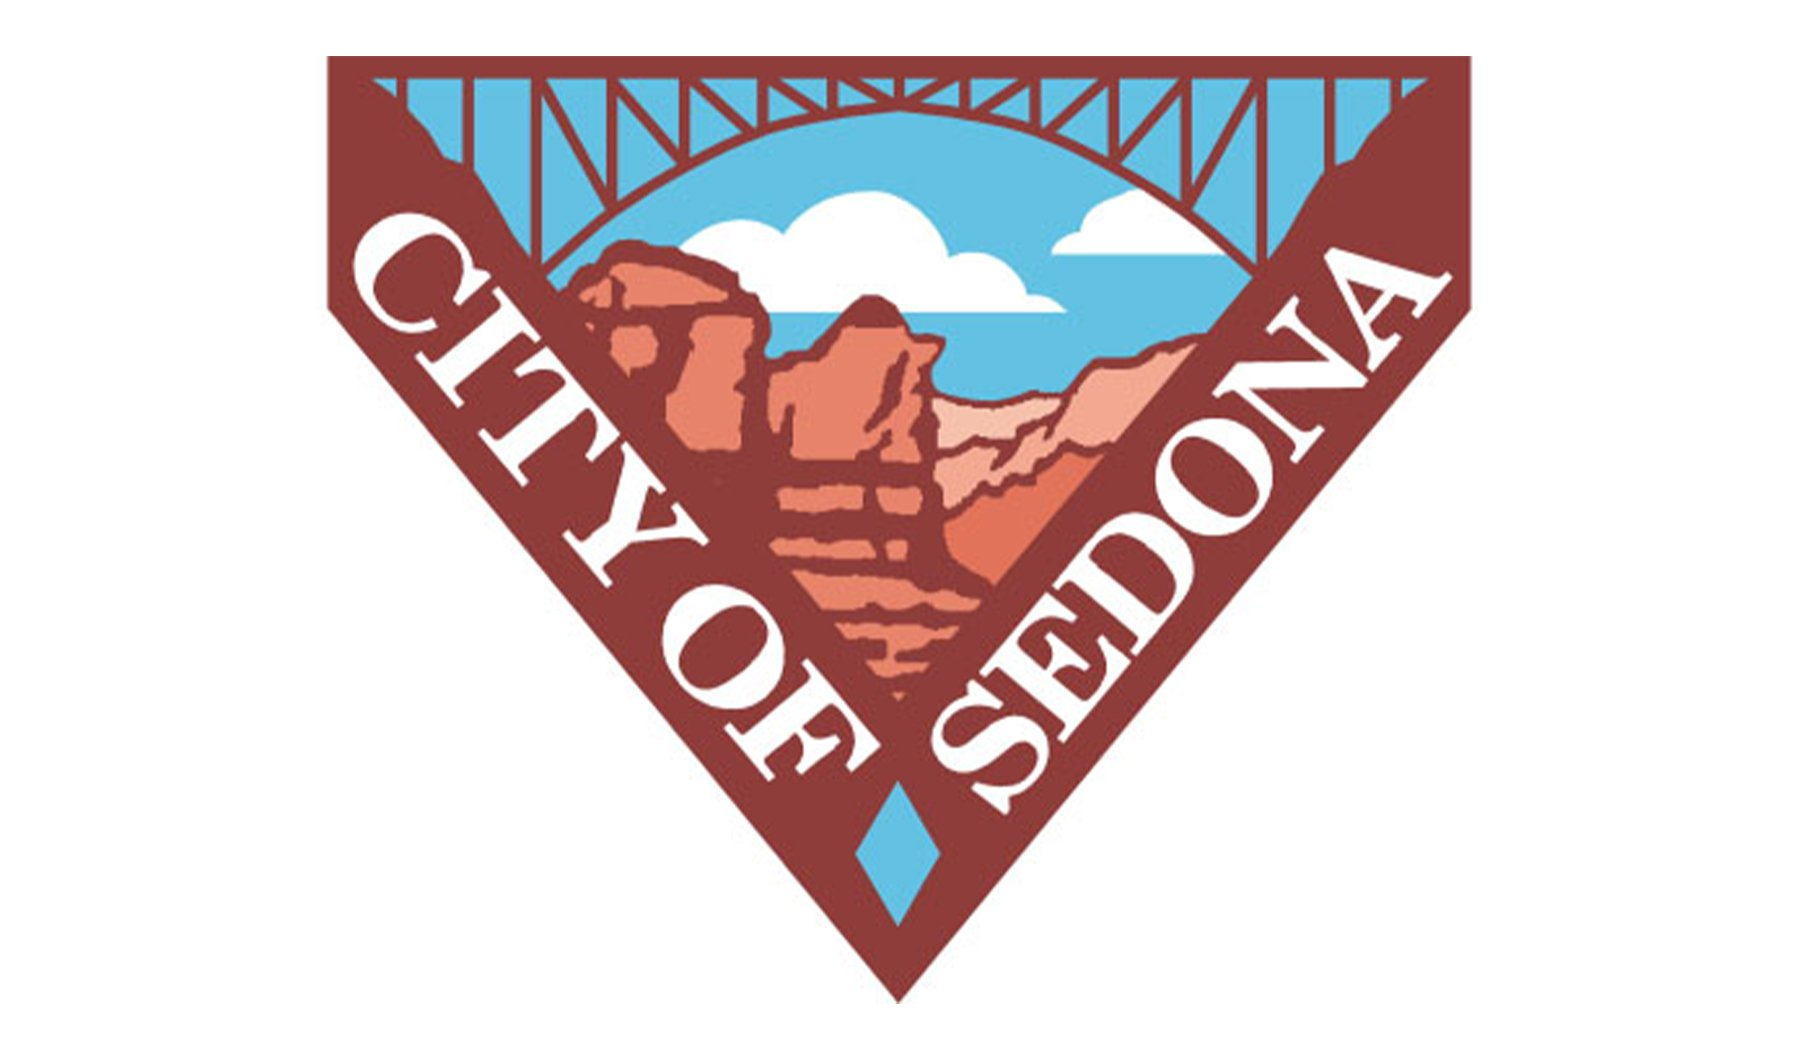 City of Sedona, Arizona